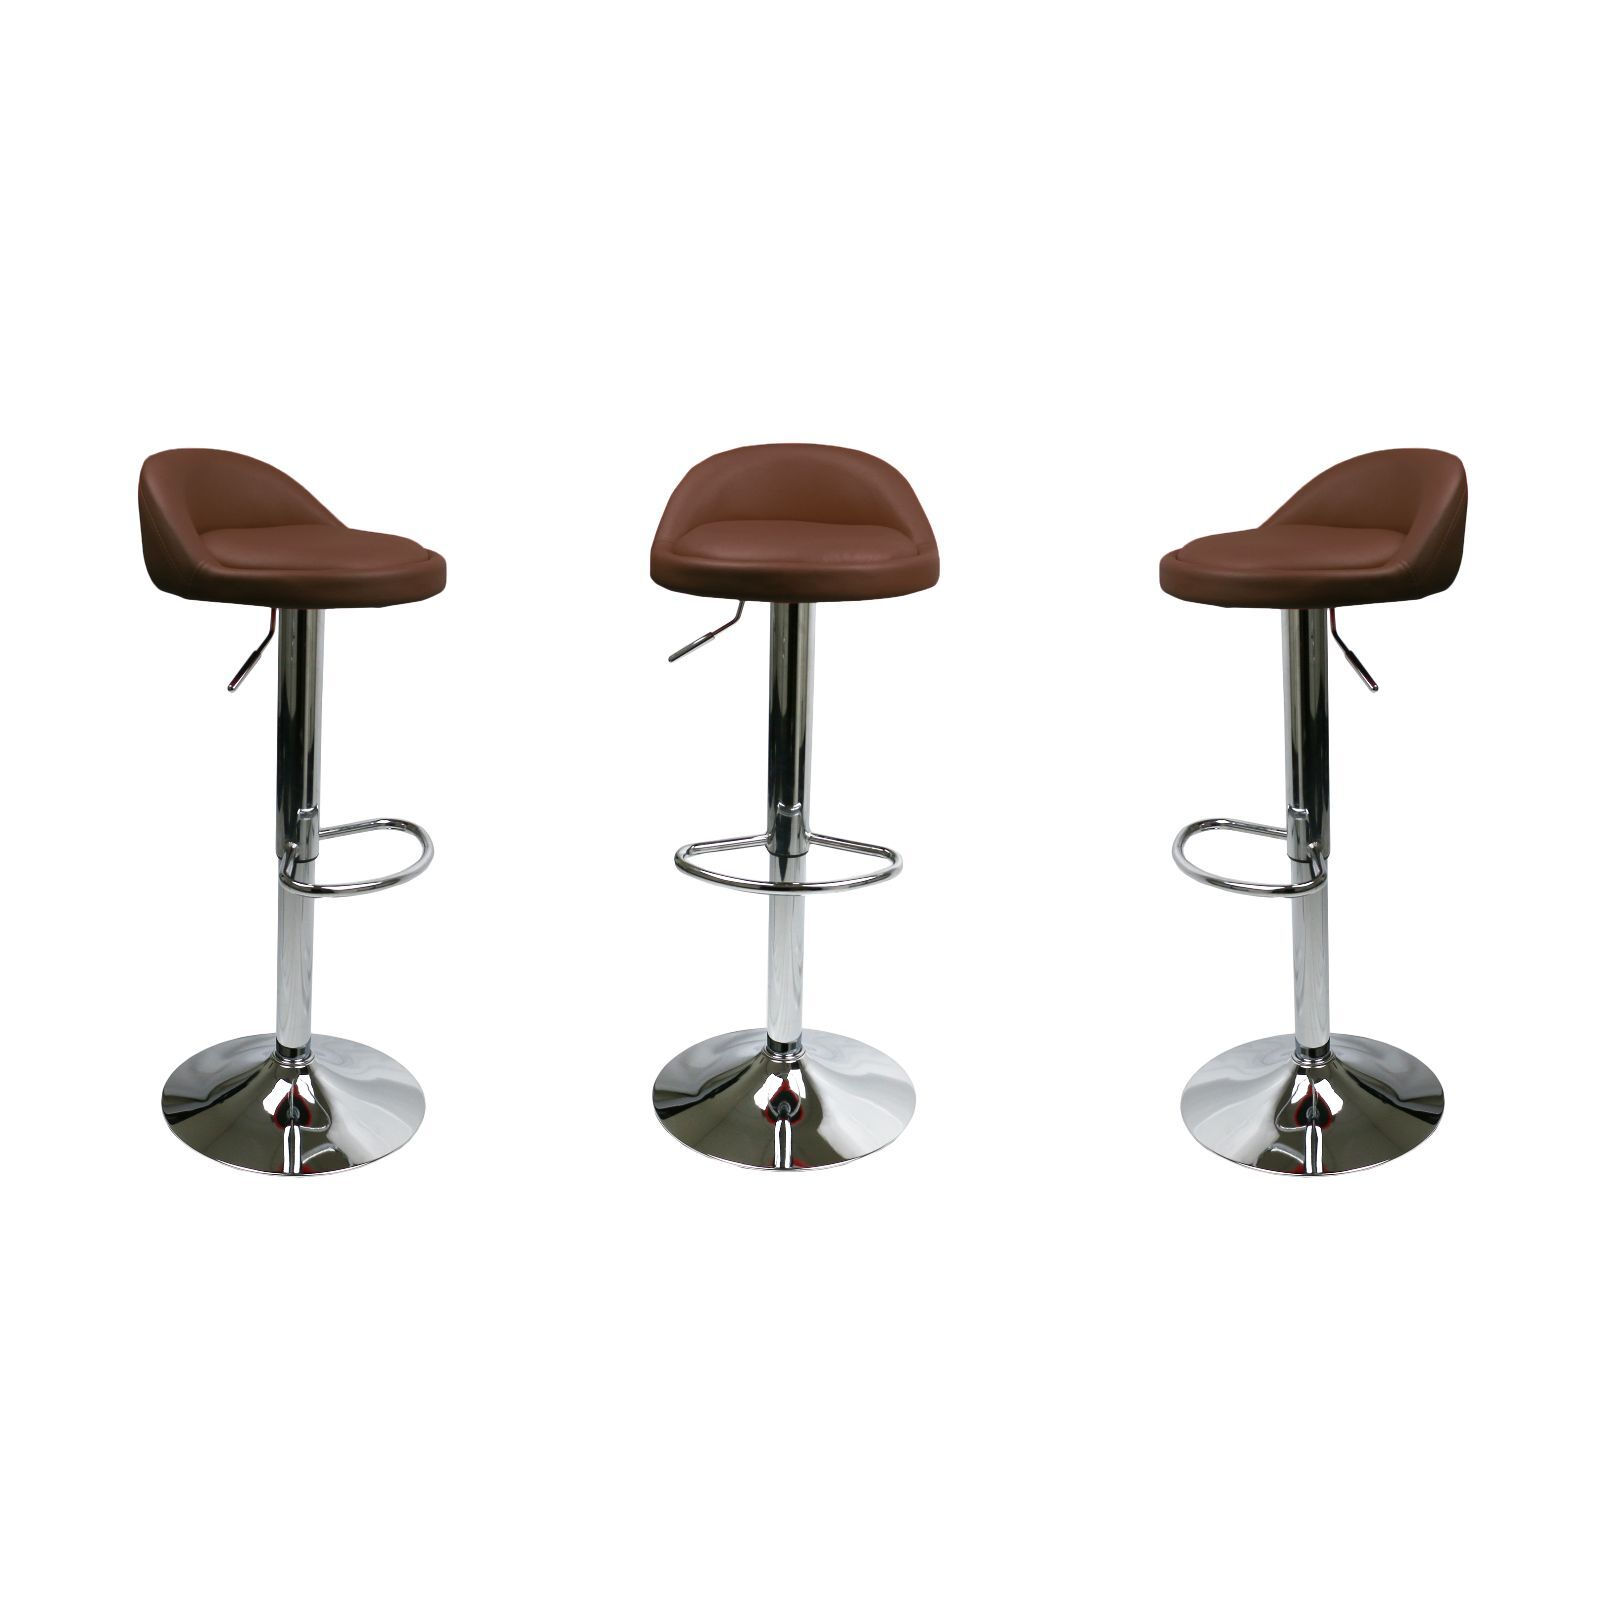 Brown Adjustable Bar Stool Set Of 2 Brown Leather Bar Stools Swivel Dinning Counter